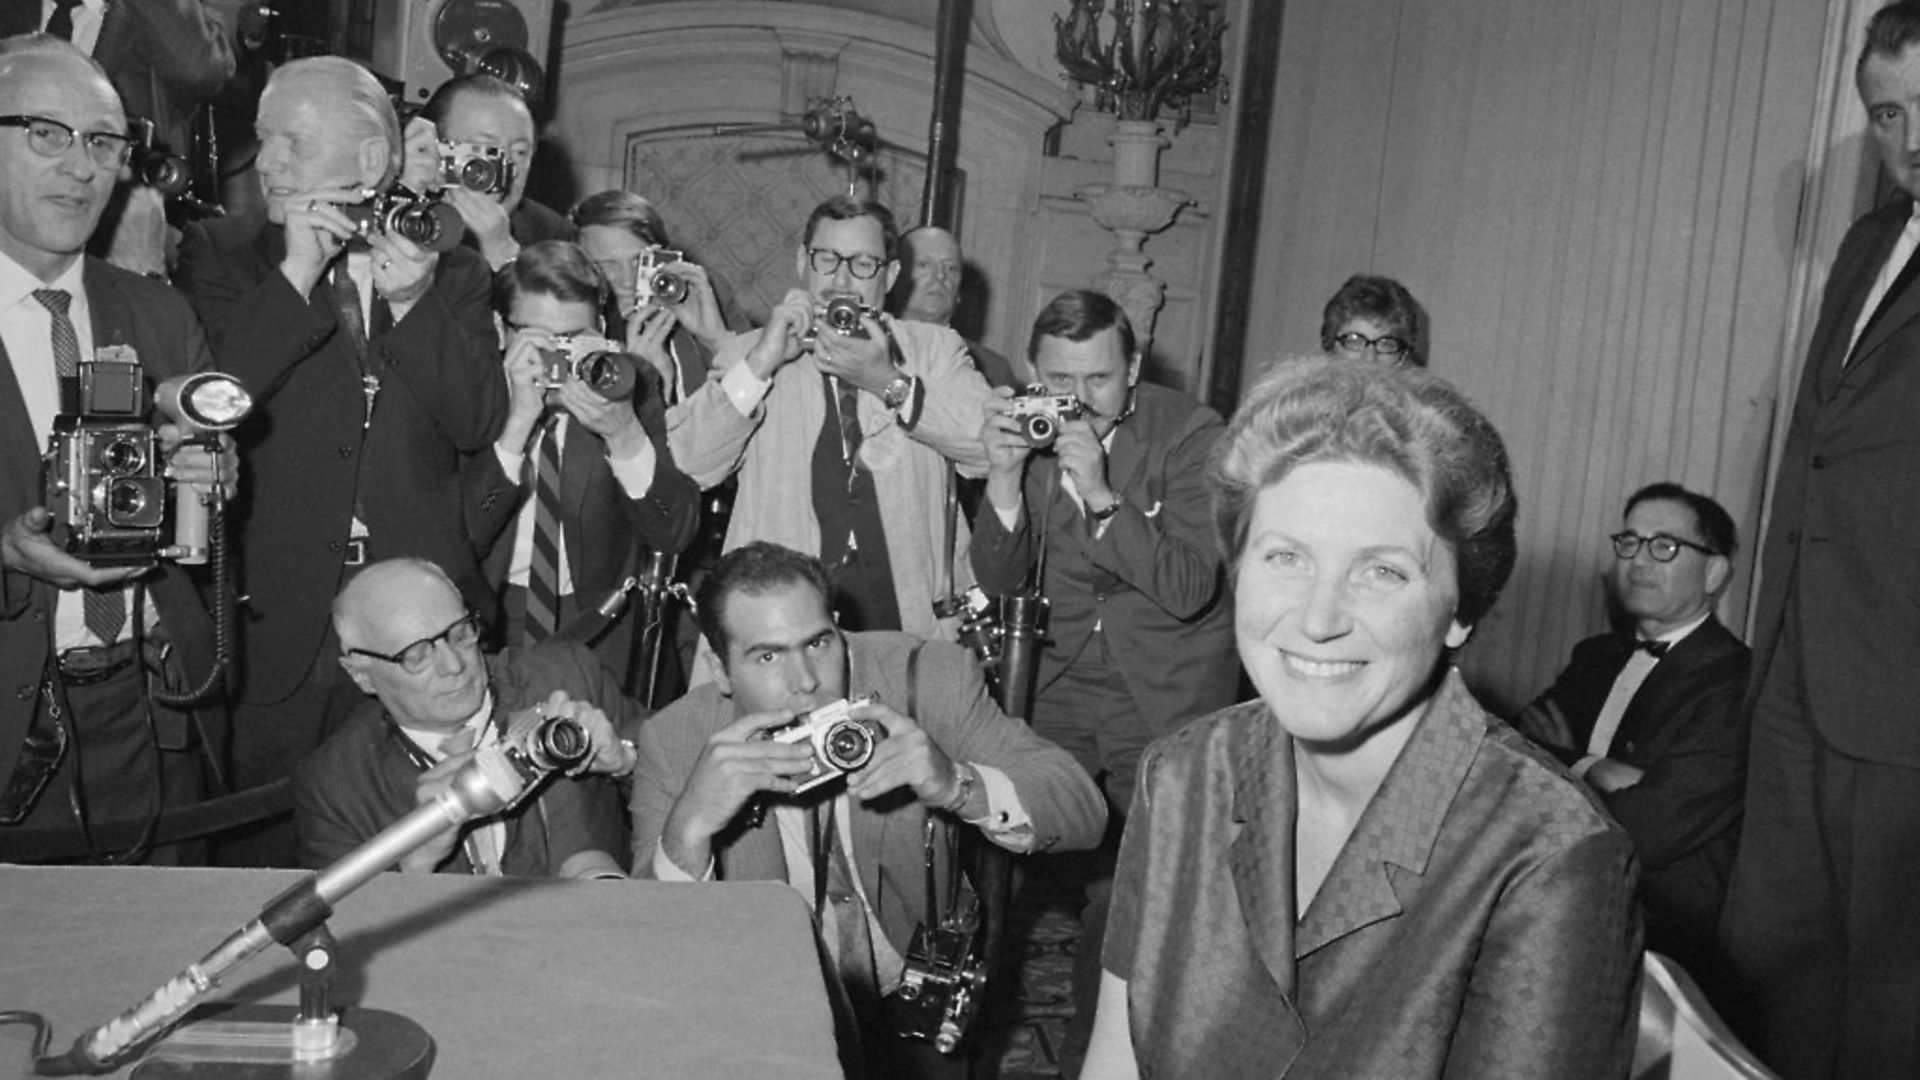 (Original Caption) Say Cheese. New York: Svetlana Alliluyeva, daughter of the late Russian dictator, Josef Stalin, smiles for photographers at her press conference here April 26. - Credit: Bettmann Archive